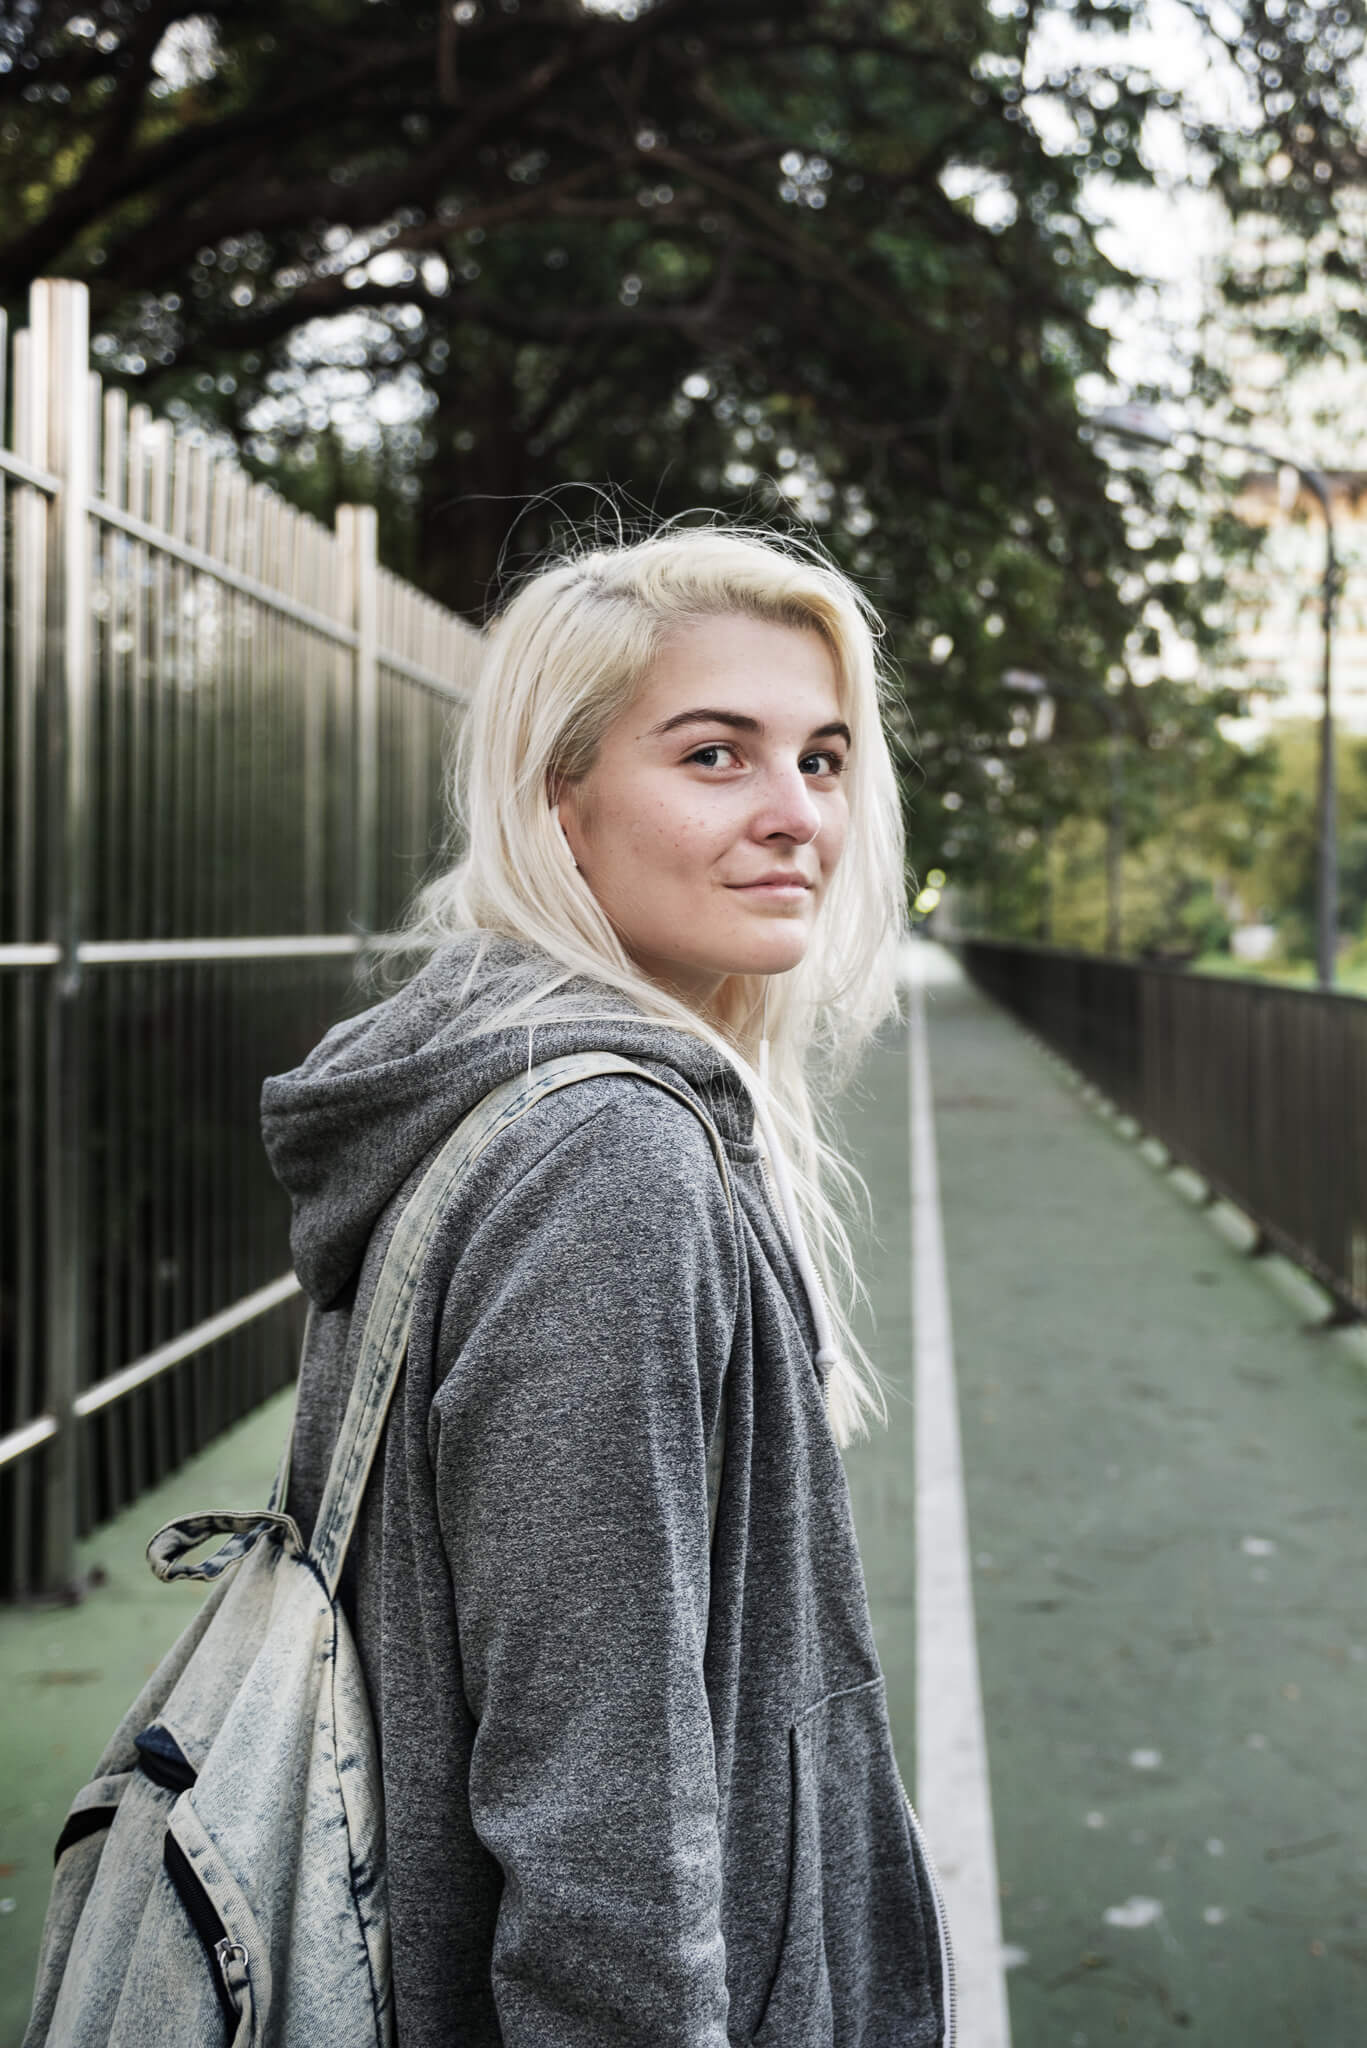 A young woman dealing with the reality of homelessness